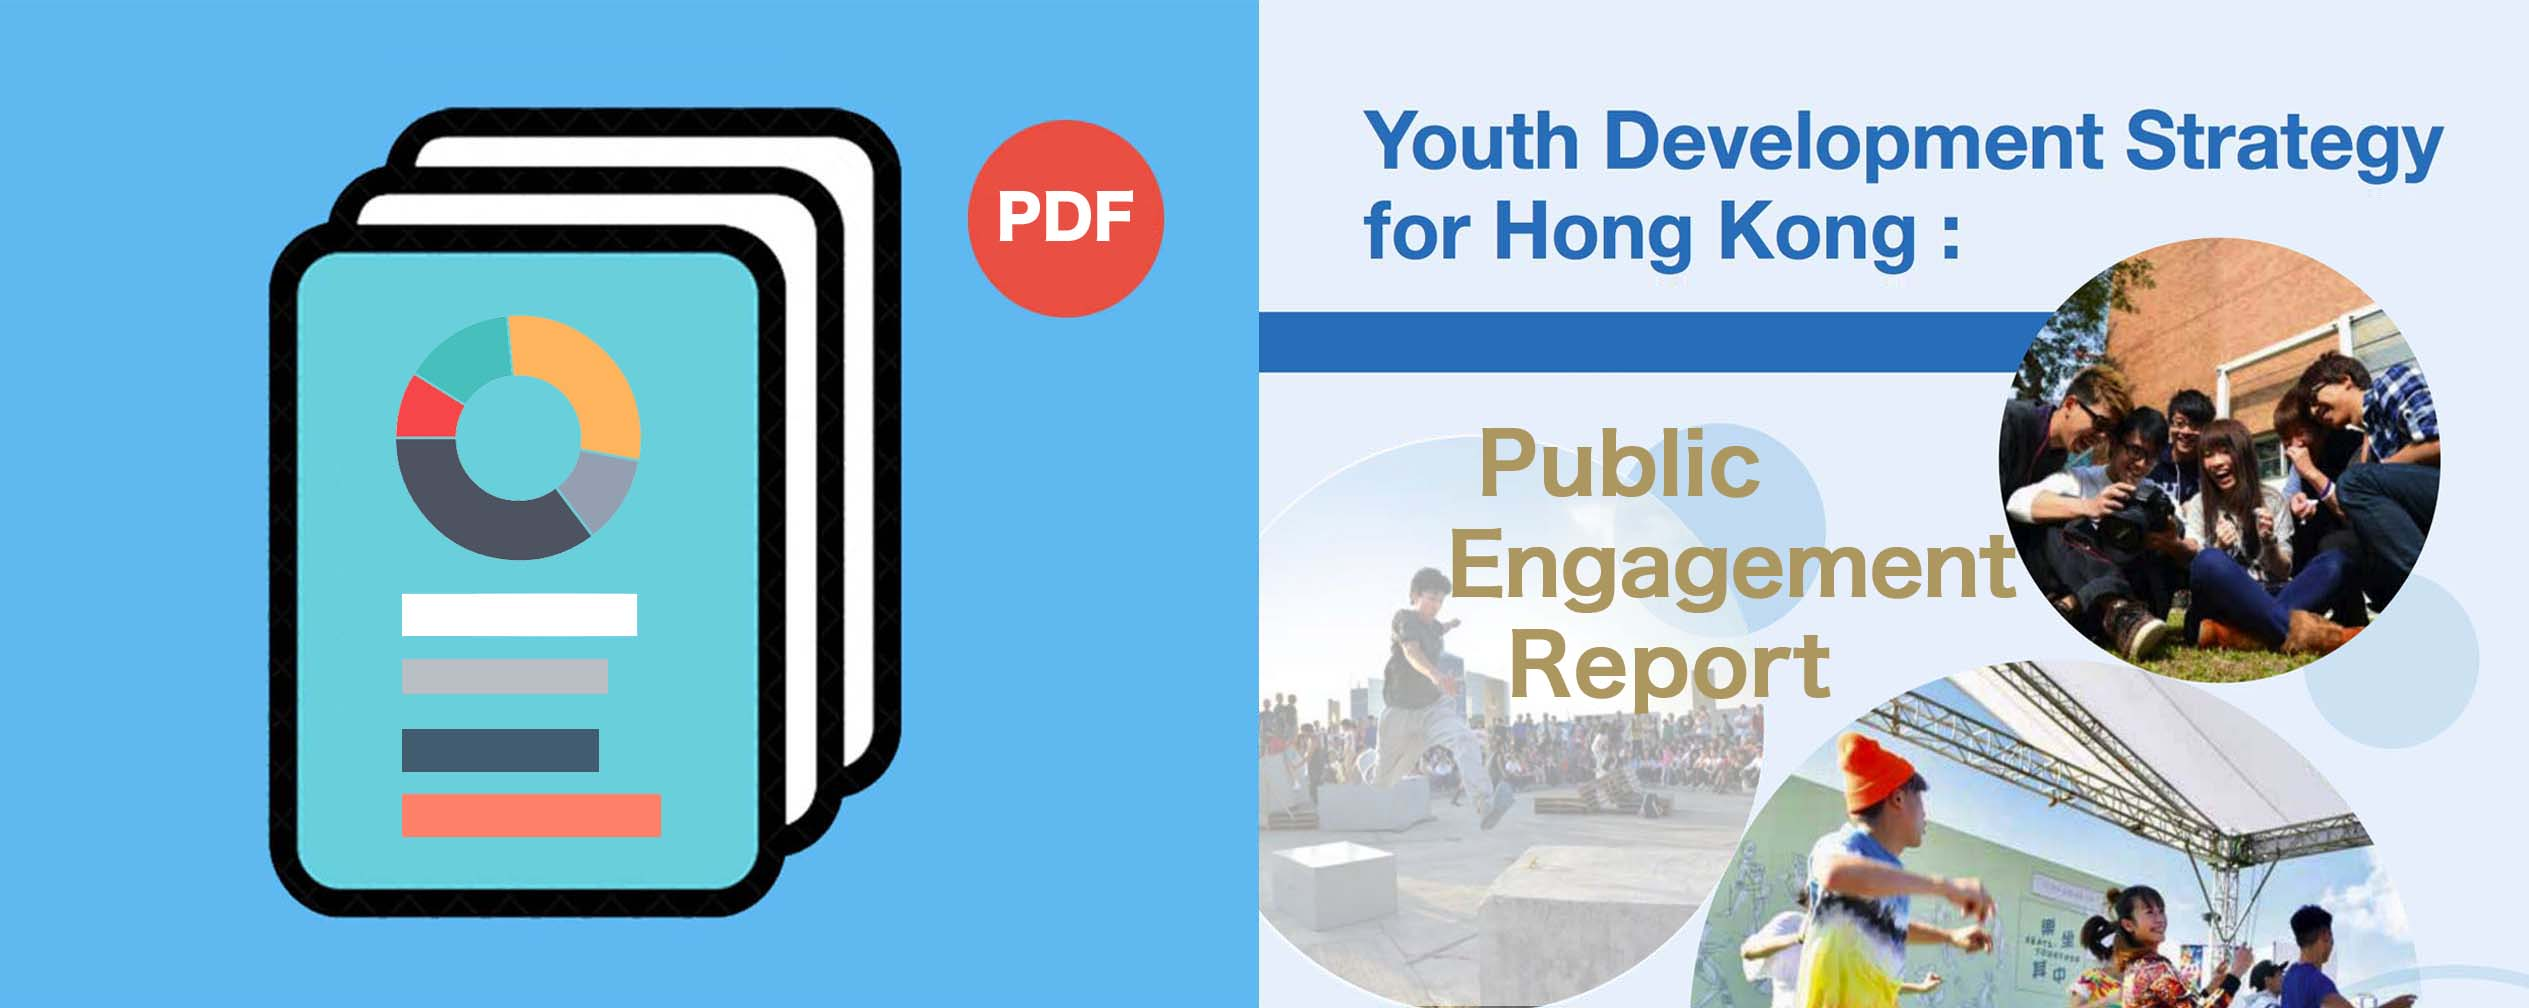 Youth Development Strategy for Hong Kong: Public Engagement Report